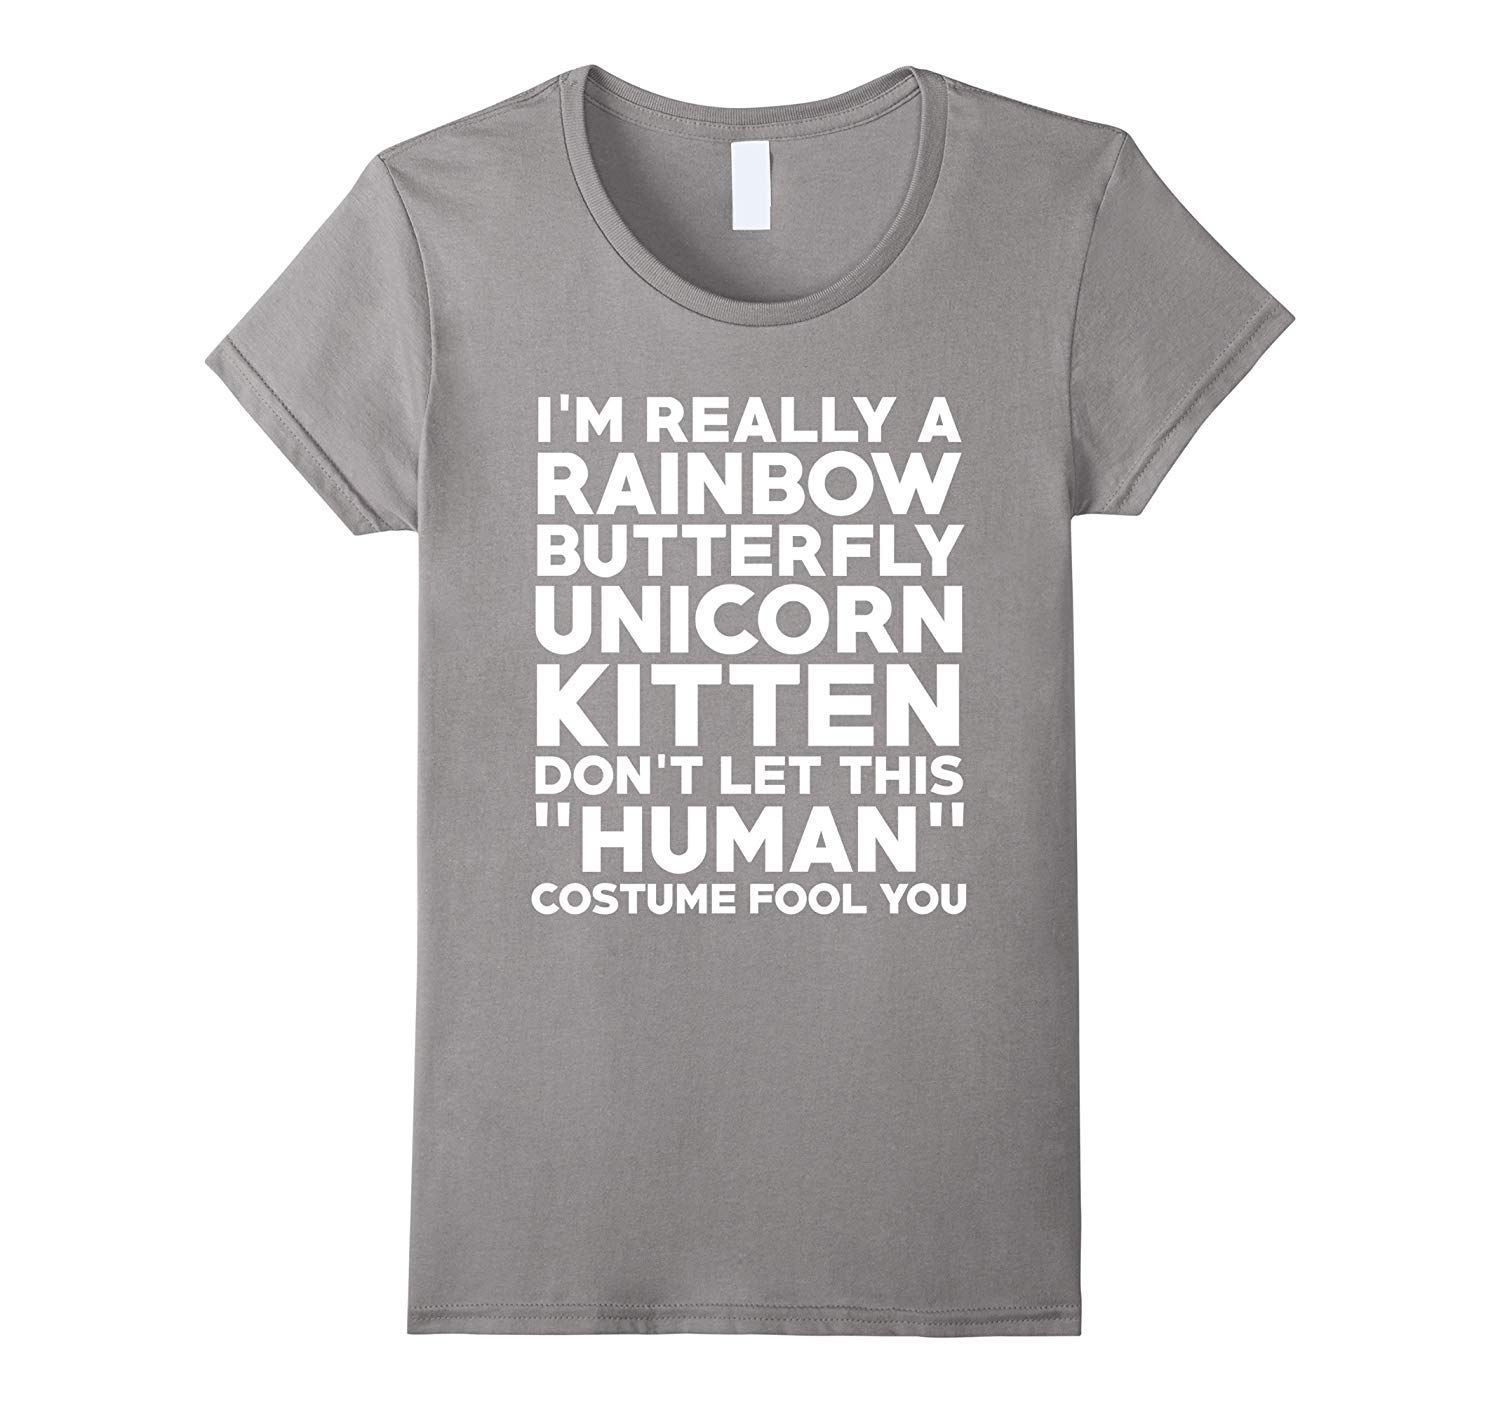 I M A Rainbow Butterfly Unicorn Kitten Don T Let This Costume Fool Funny Halloween T Shirt Funny Shirts T Shirt Shirts